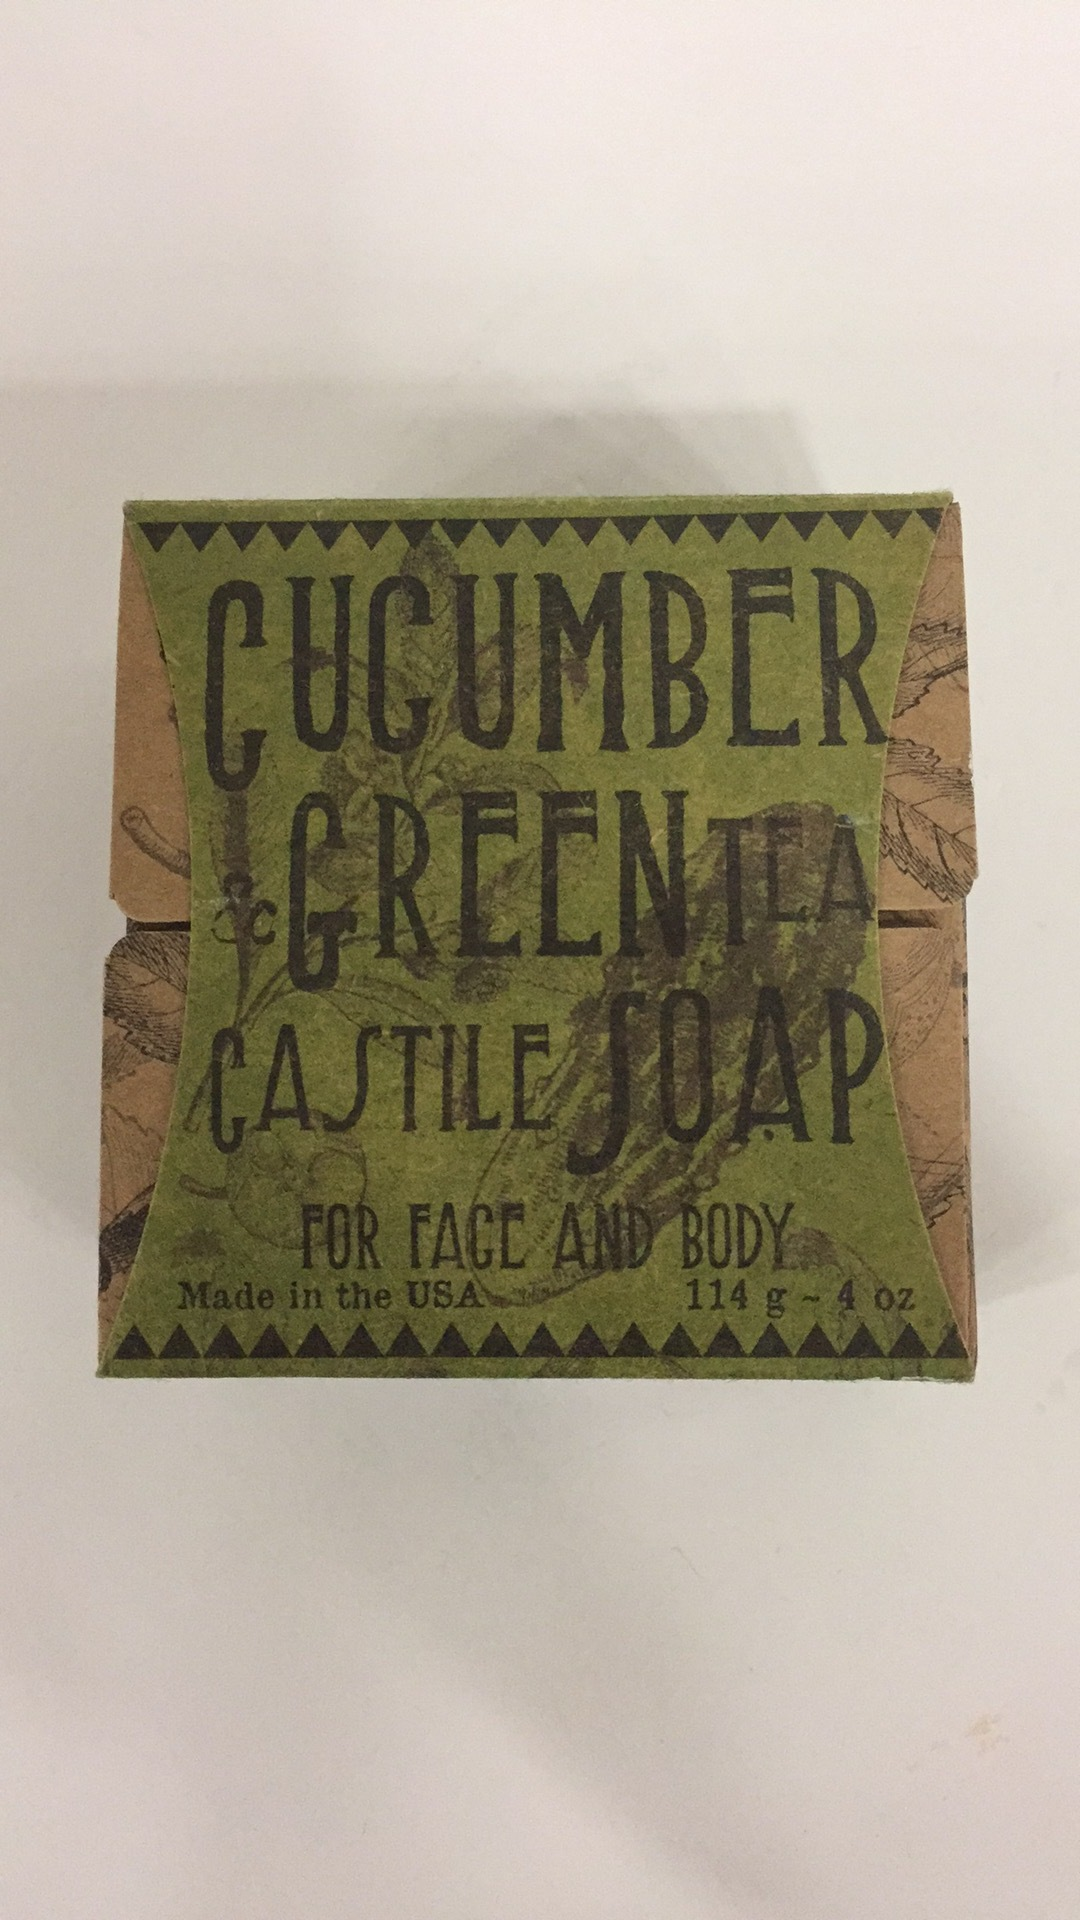 Cucumber & Green Tea Castile Soap For Face And Body | The